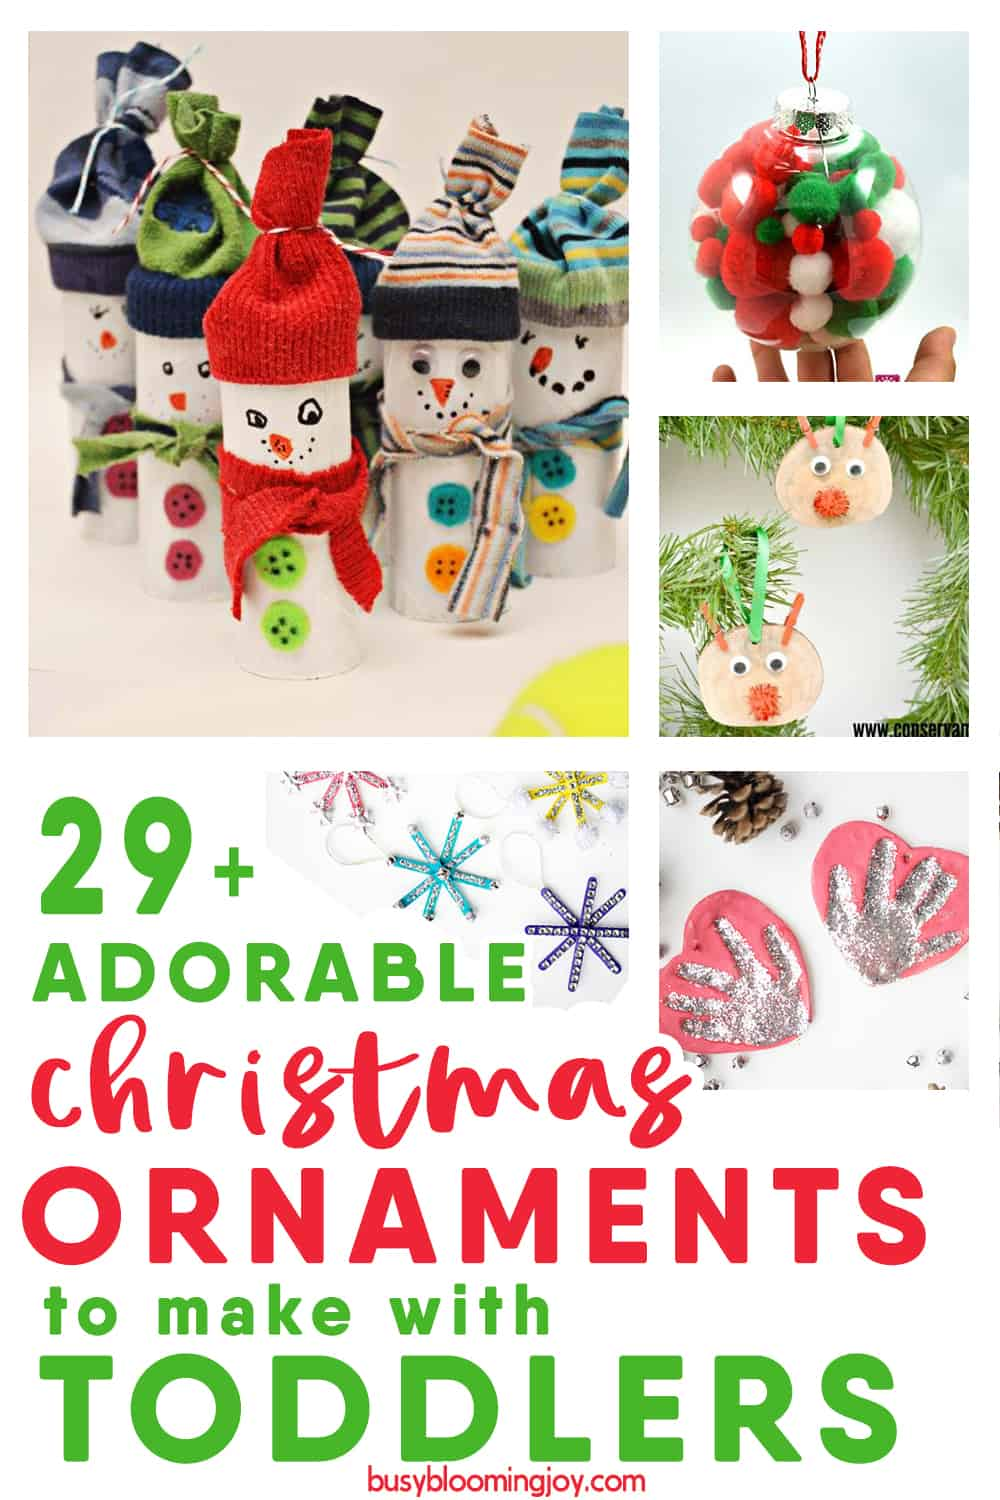 Homemade Christmas ornaments to make with kids, especially toddlers!